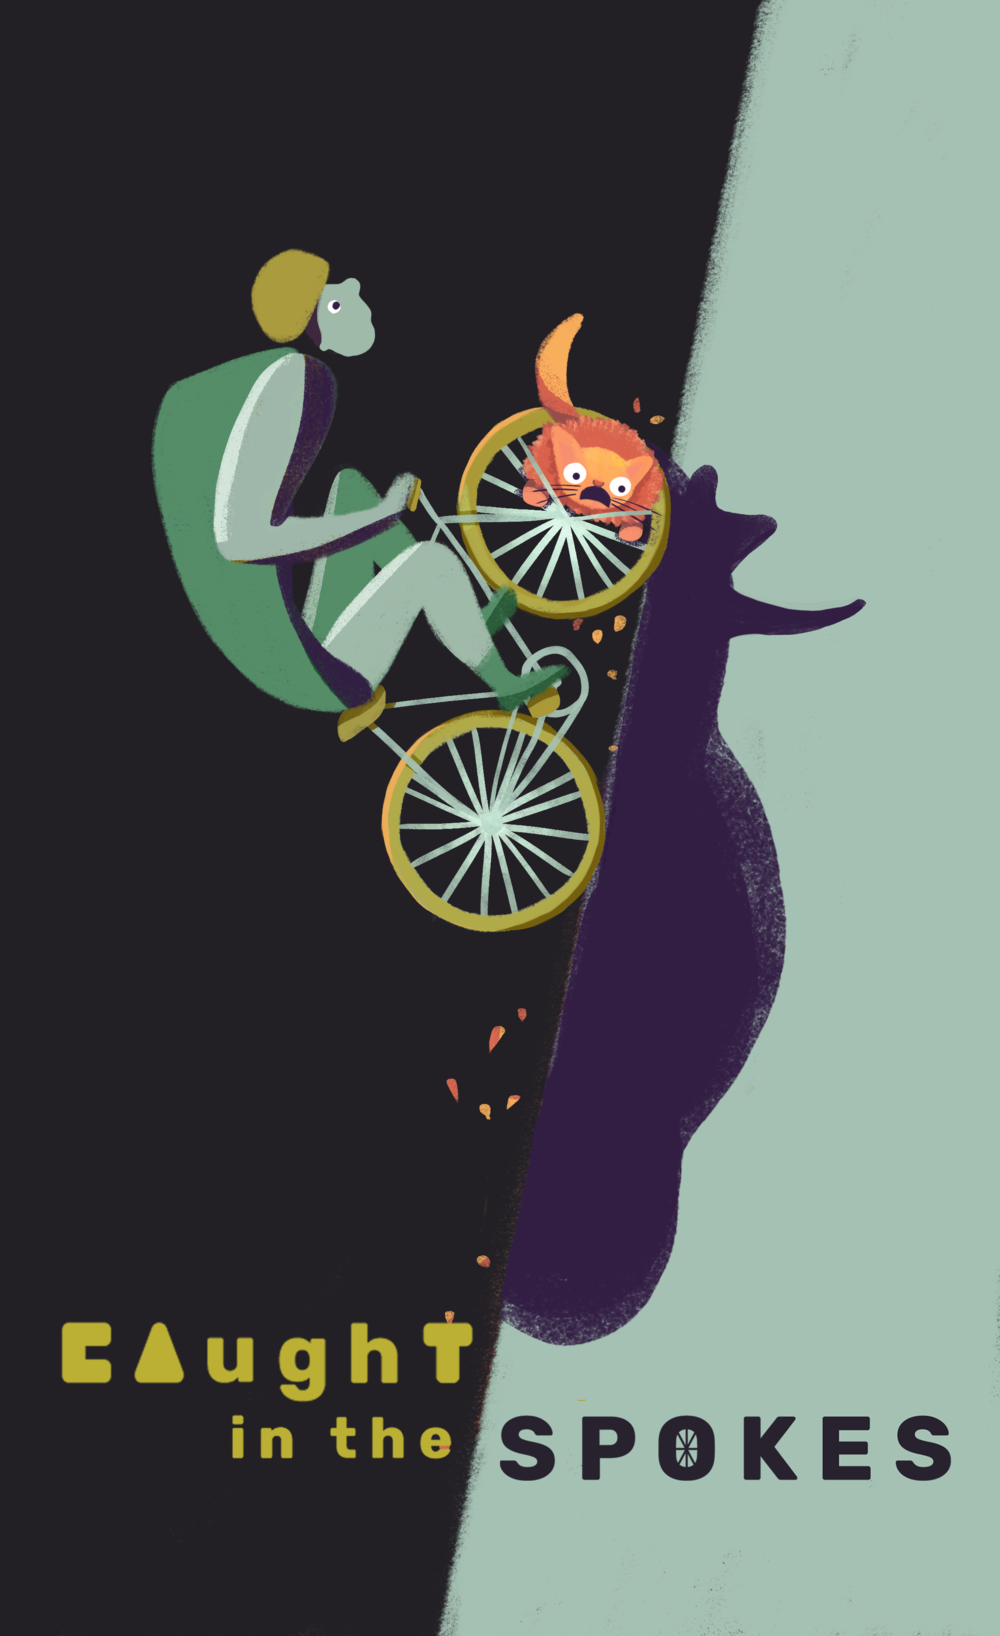 The composition direction works in creating balance, so I refined details and made the artistic style and textures more consistent throughout the poster.  • To indicate and emphasize the collision of stories (bike + cat), we relocated the cat to the front spokes. • To make the illustration more expressive and light-hearted, I added eyes on the biker. This also reduces the intensity and emphasis on the intense biking, and rather, helps highlight the absurd nature of the situation.